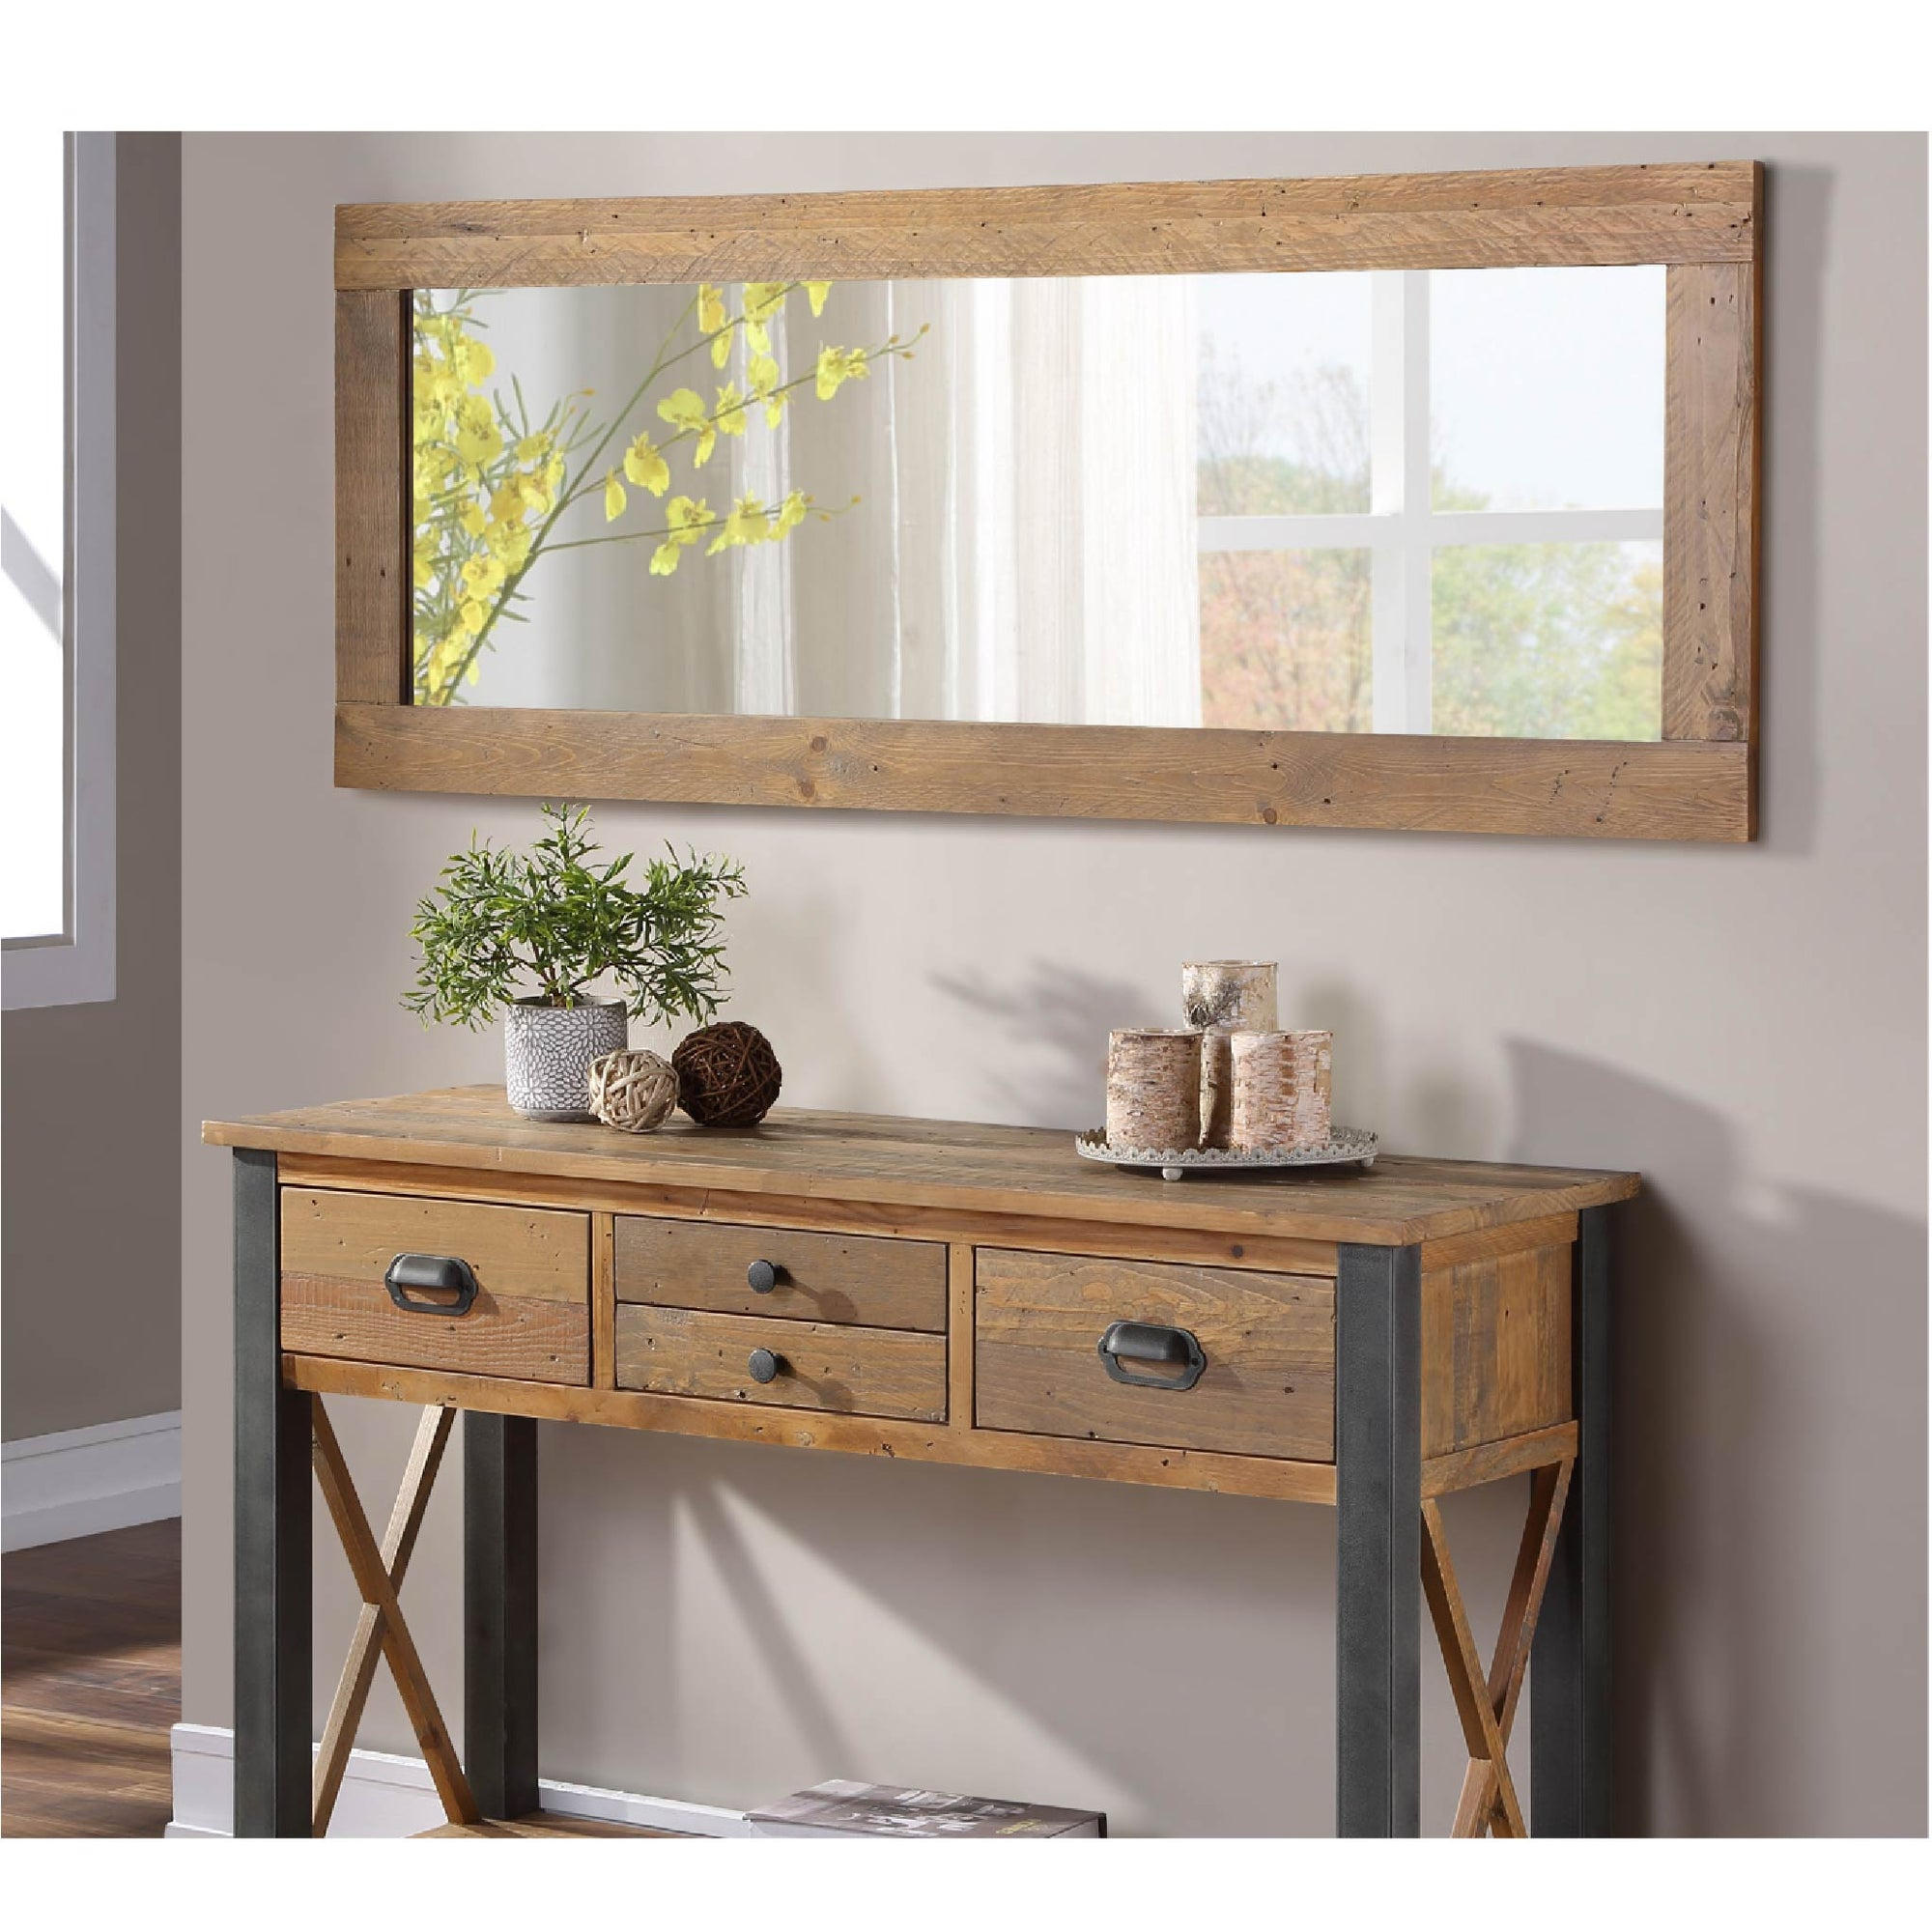 Horizontal view of Urban Elegance Reclaimed Wood Framed Large Mirror